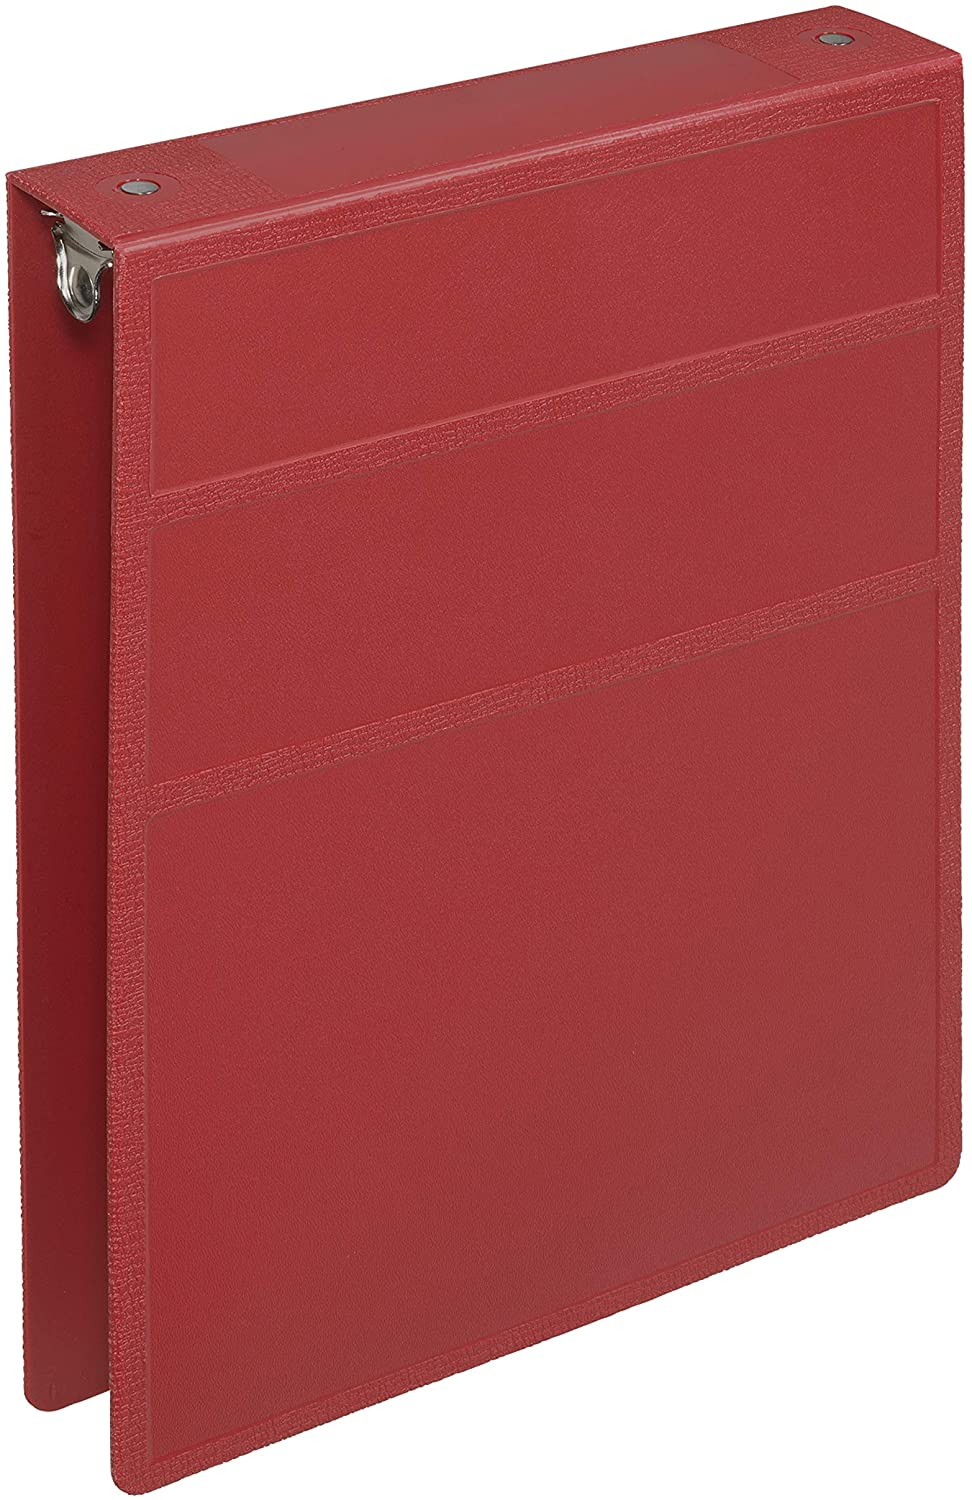 Carstens 1.5-Inch Heavy Duty 3-Ring Binder - Top Opening, Brick Red